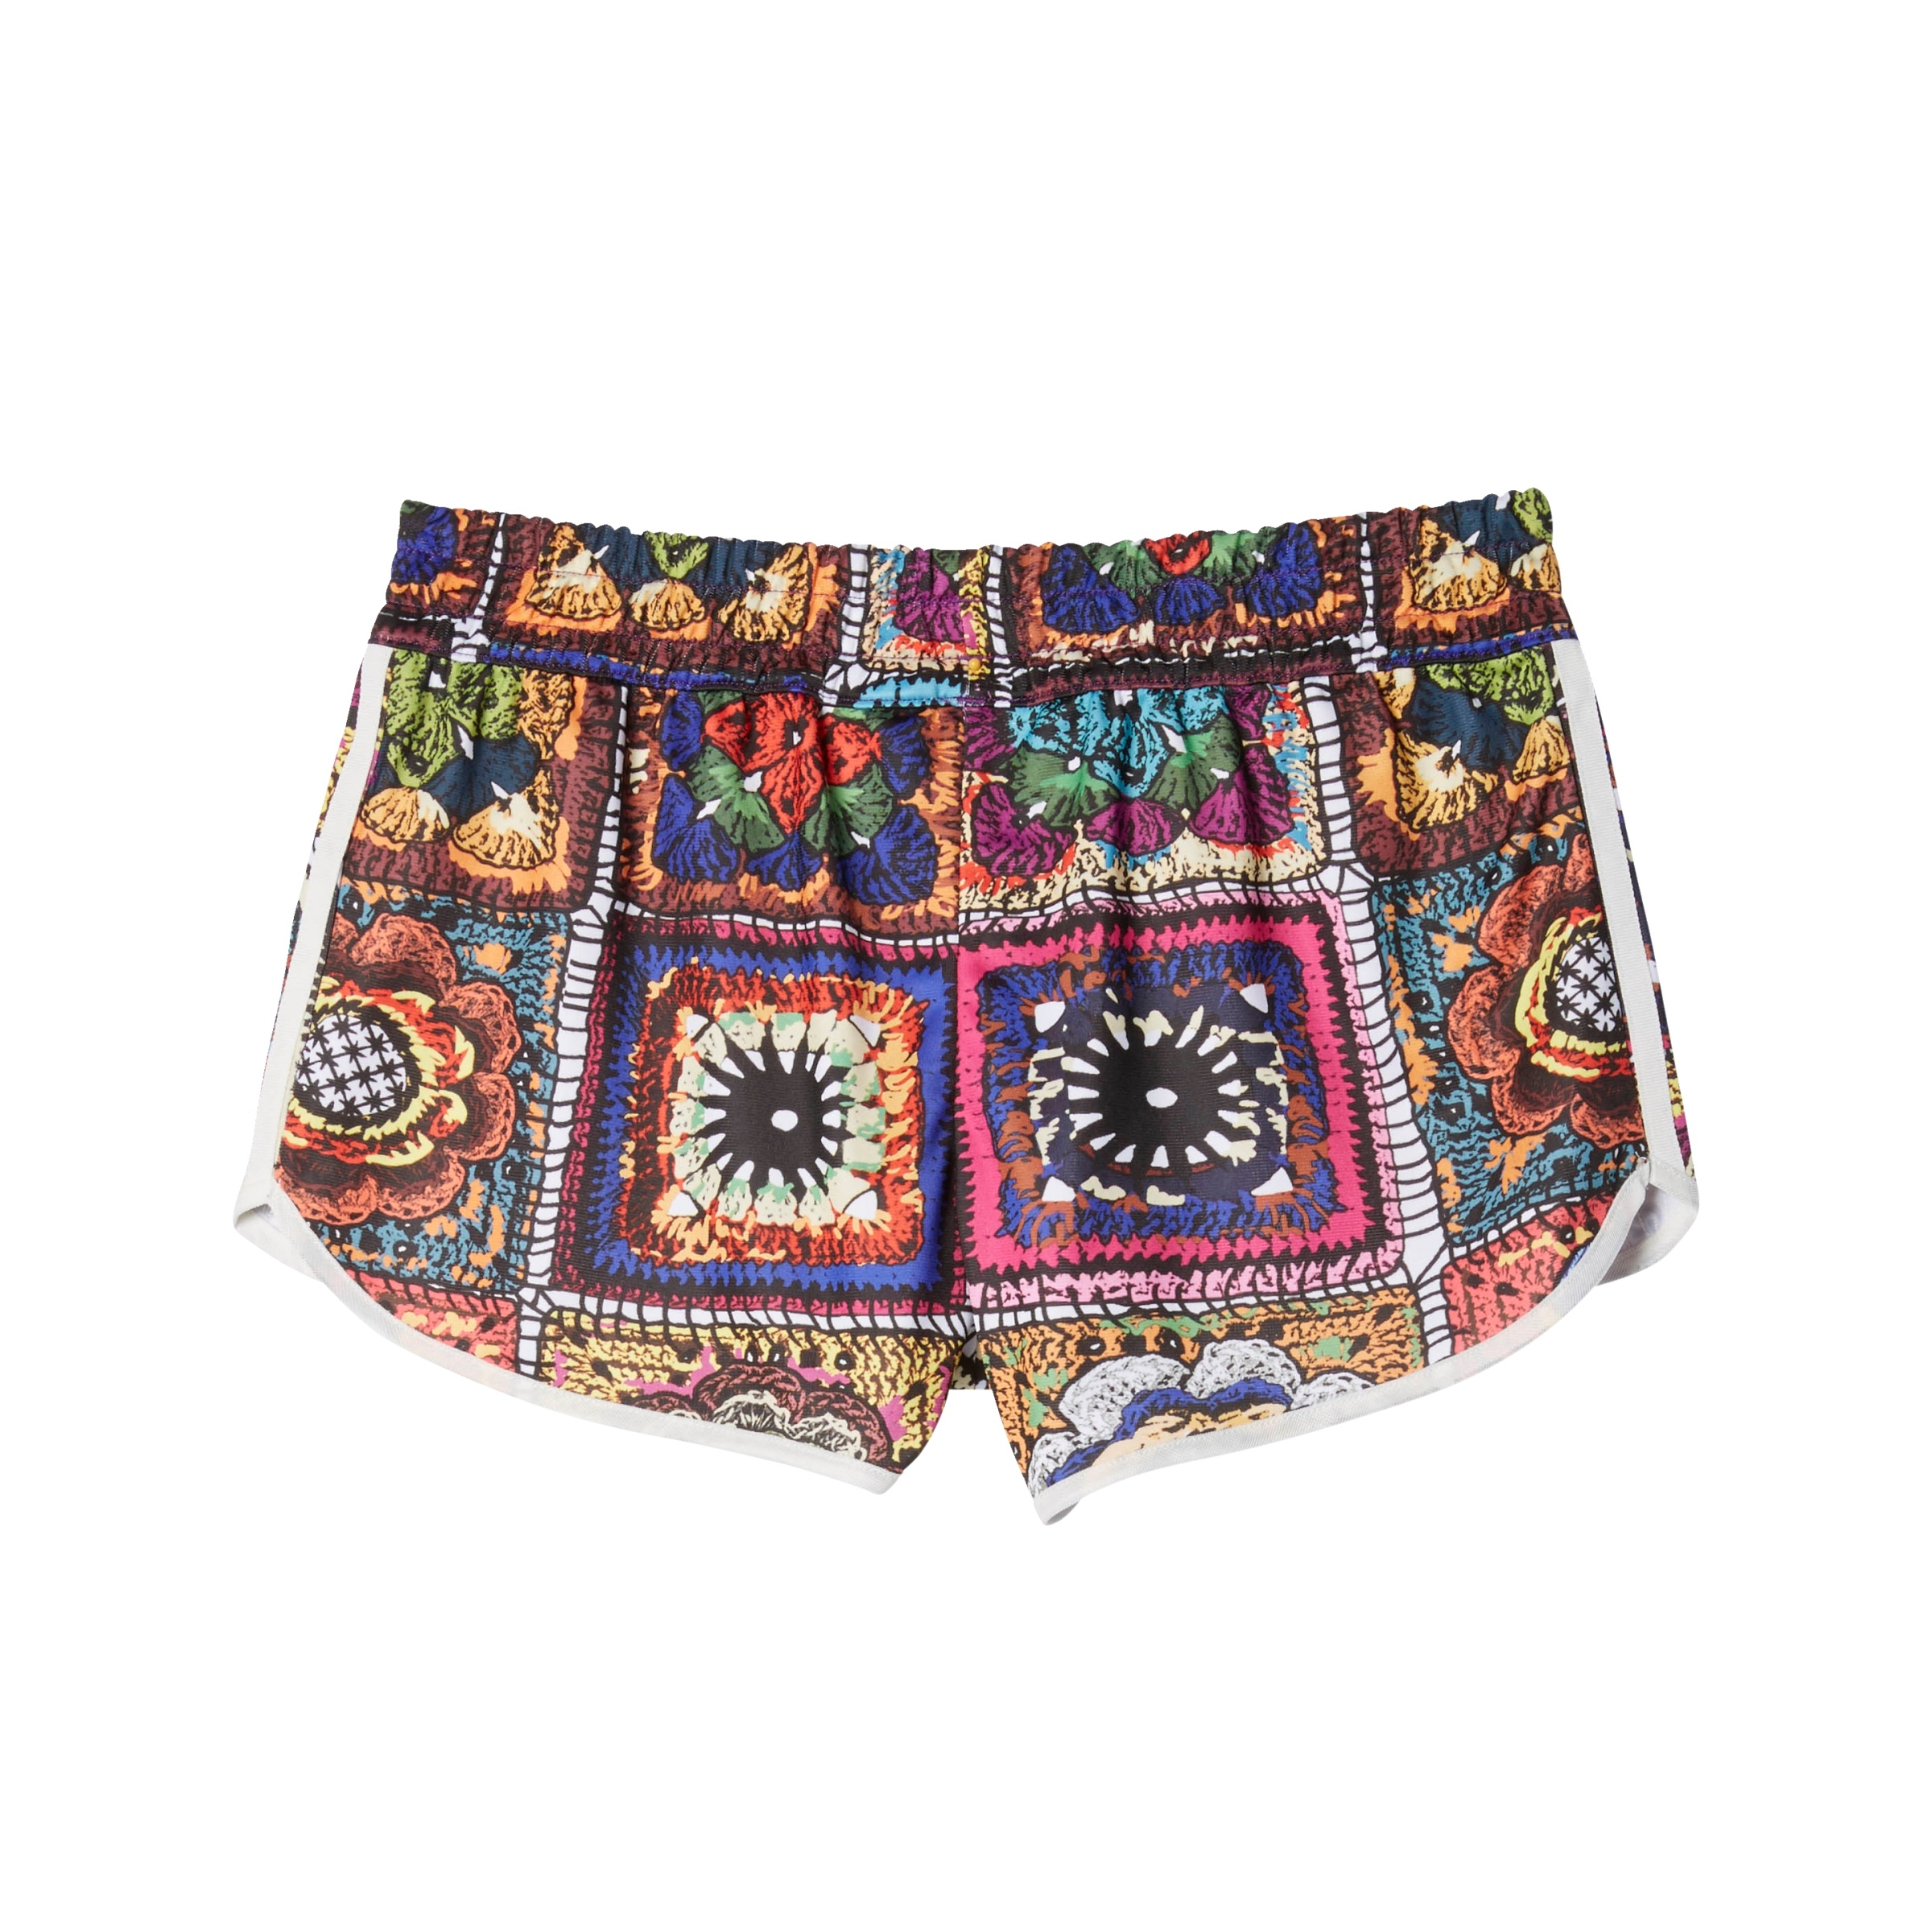 Adidas Originals Crochita Shorts (multicolor) 531c78a9186